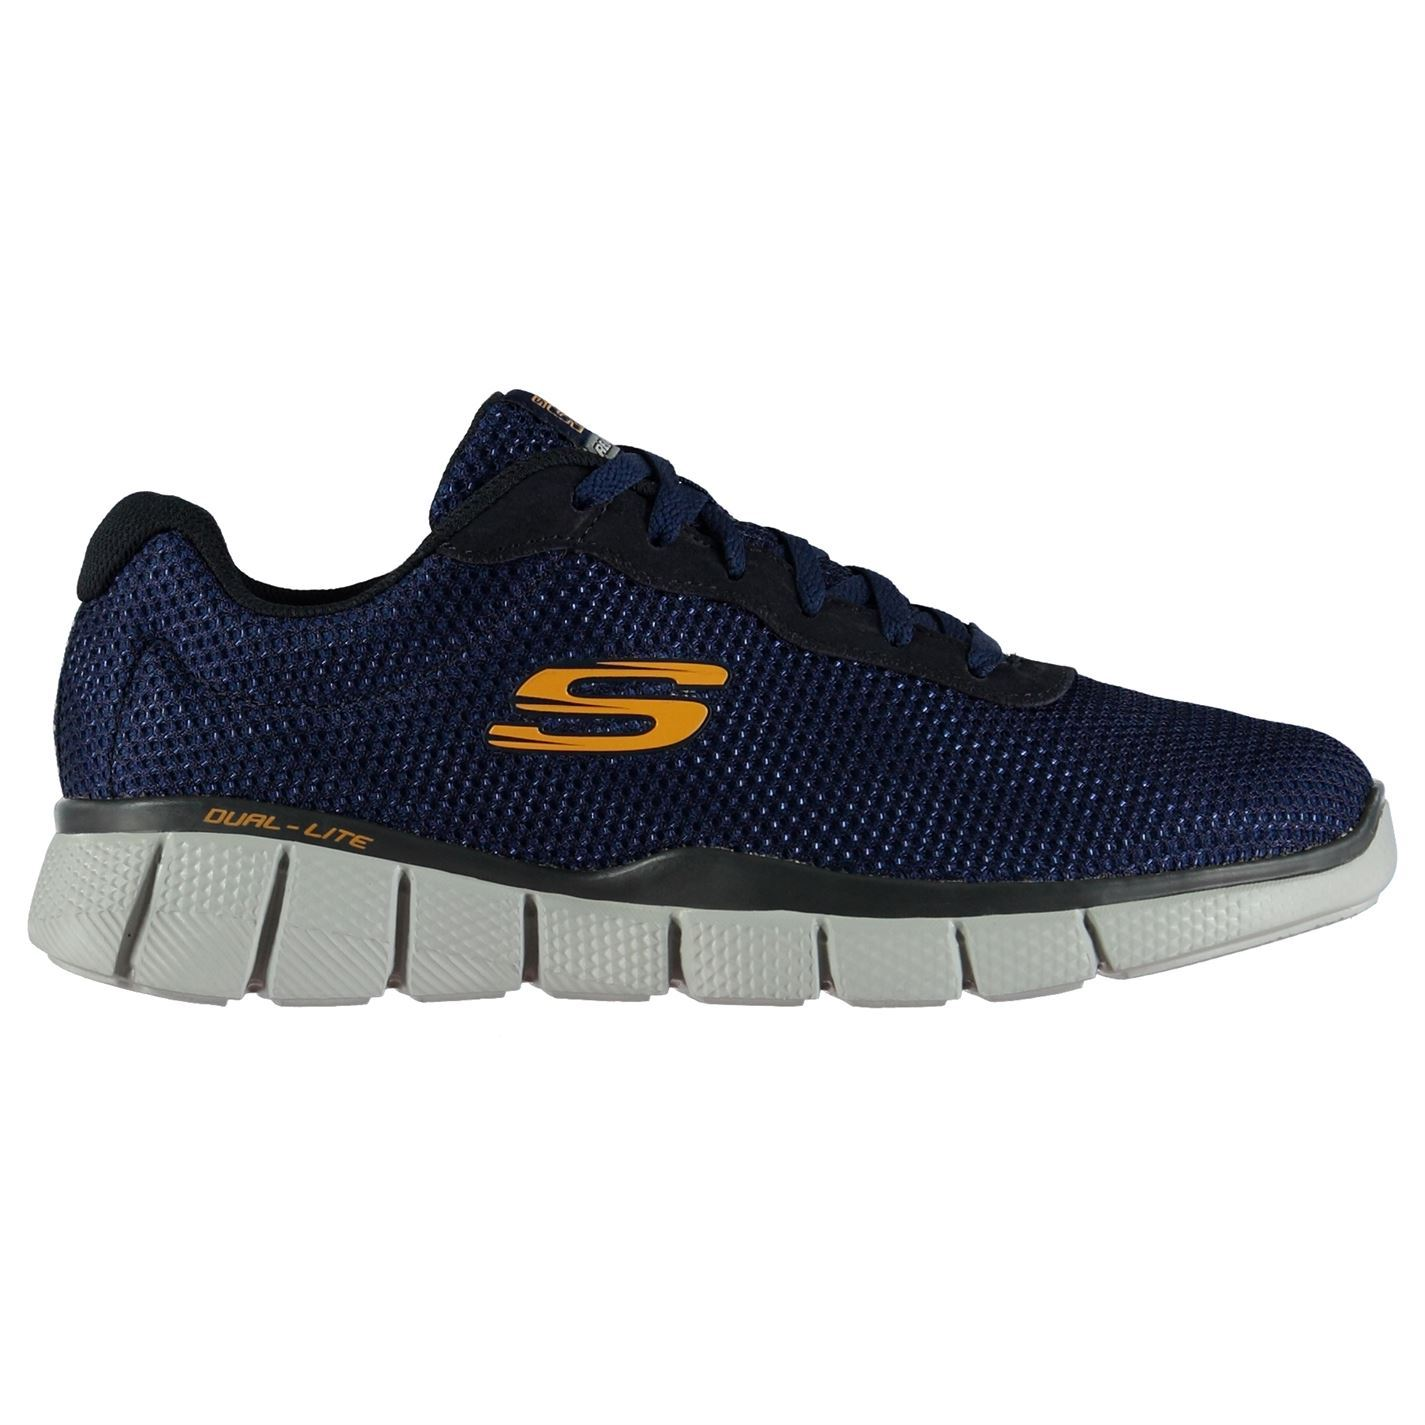 92c27fa7a5b5 Skechers Mens Equalizer 2.0 Arlor Trainers Runners Lace Up ...